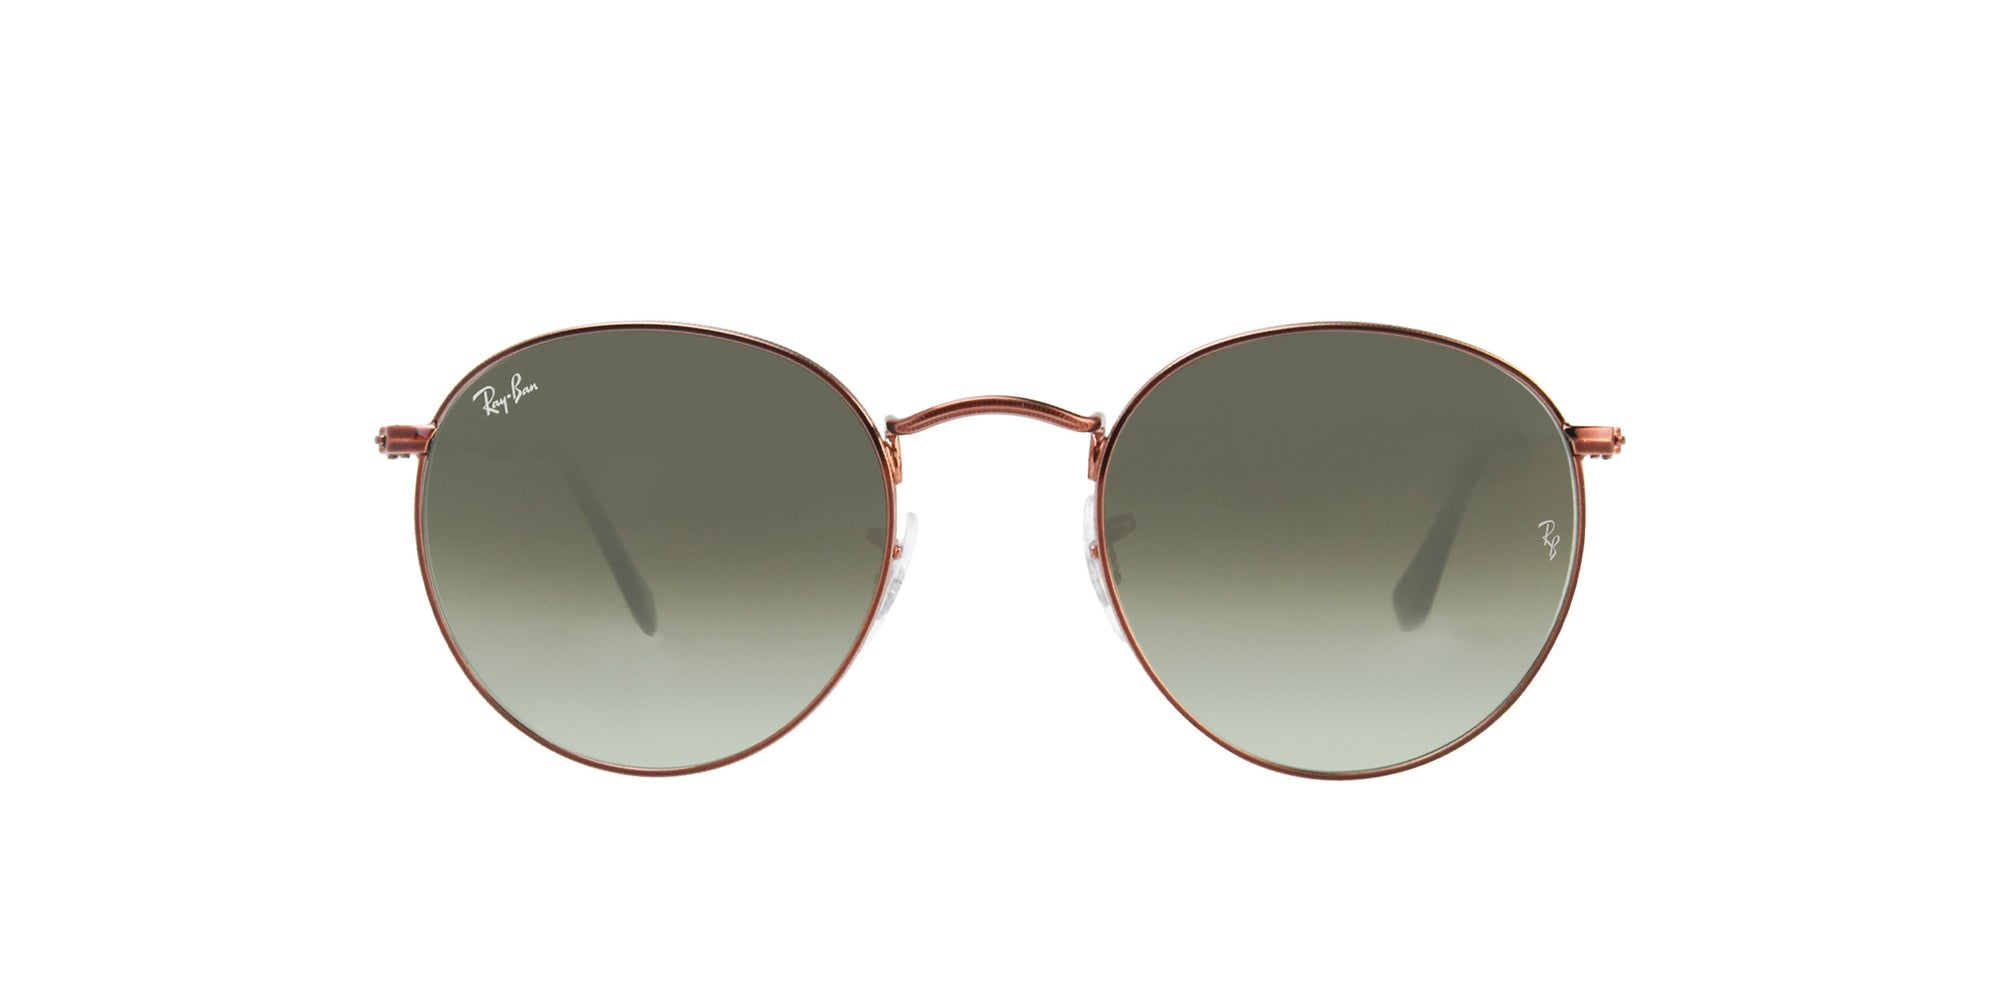 Ray Ban - Round Metal Bronze Oval Unisex Sunglasses - 50mm-Sunglasses-Designer Eyes